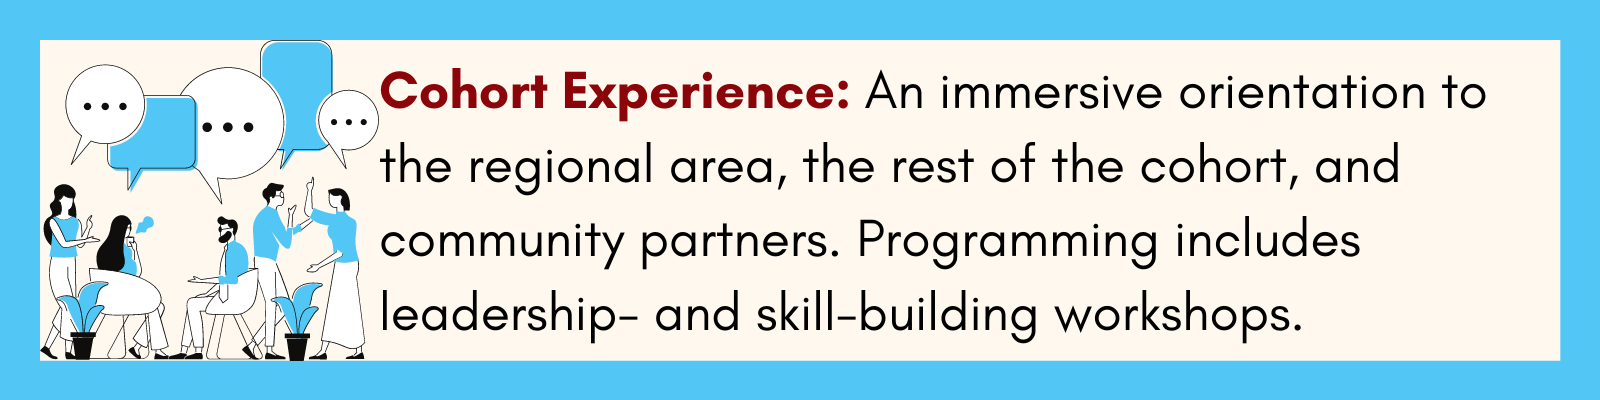 cohort experience